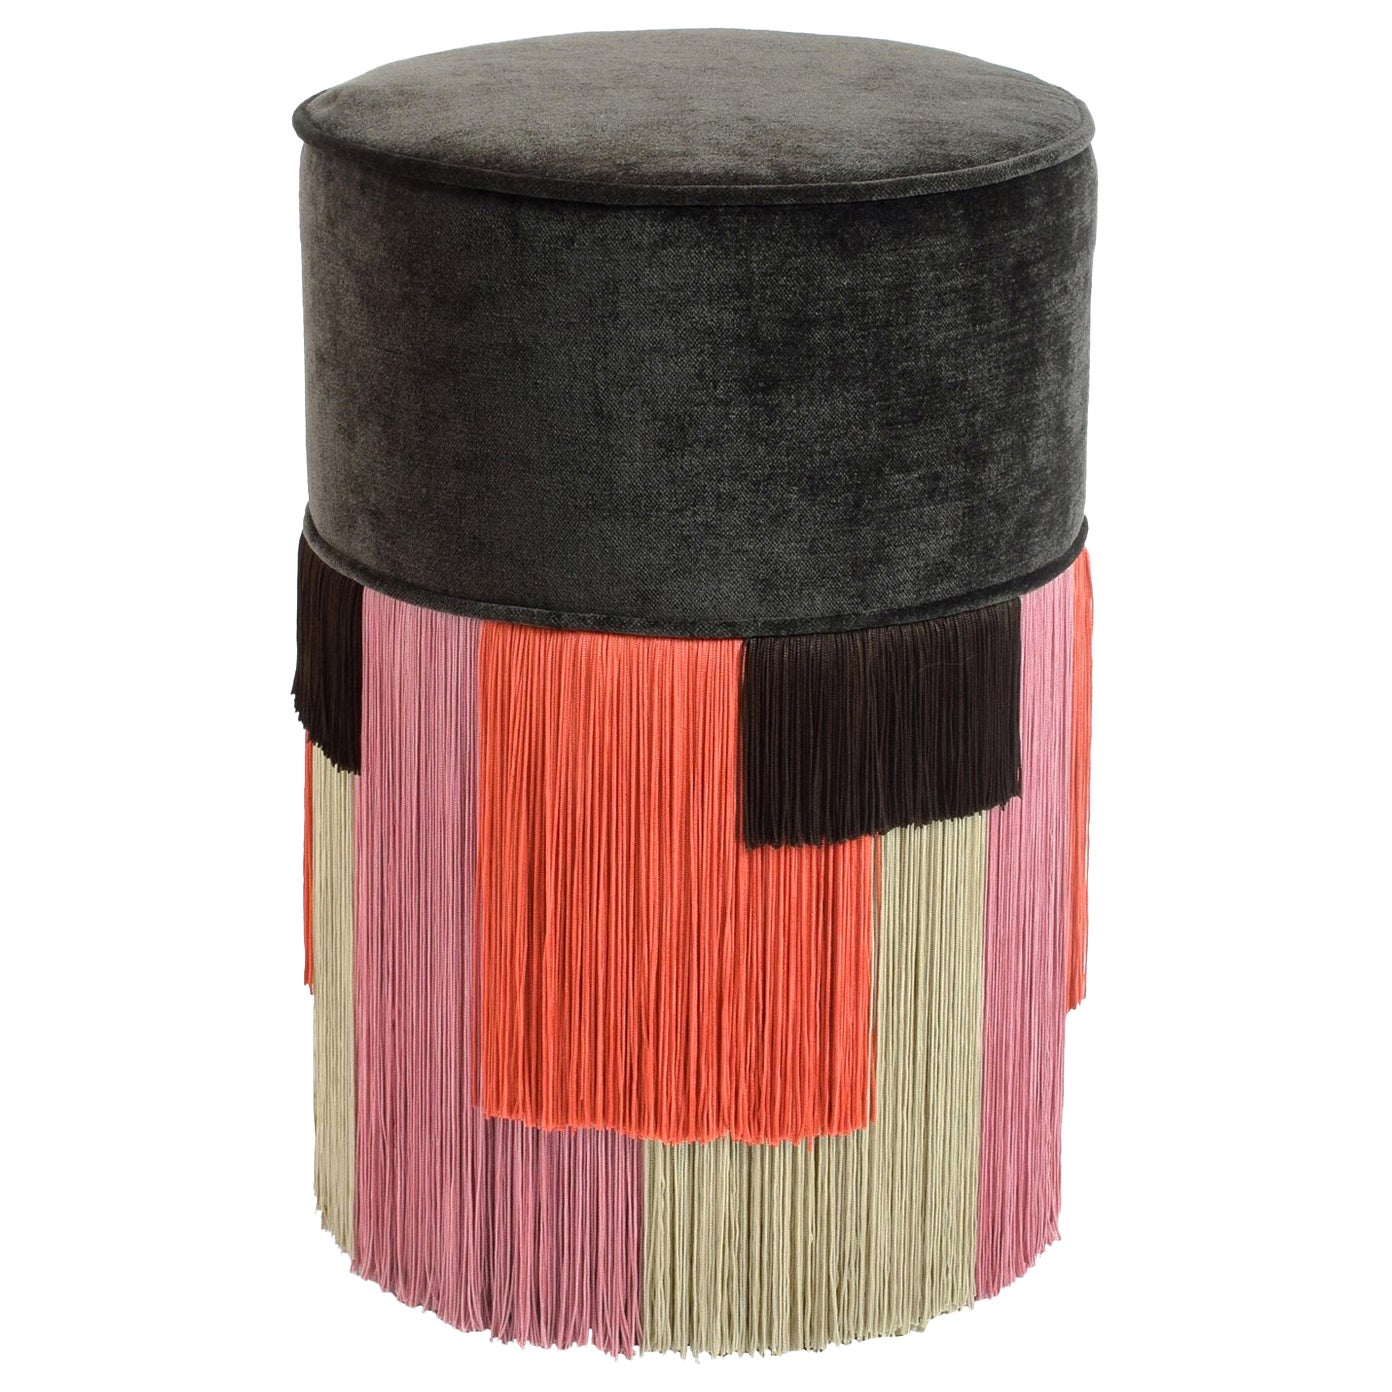 Couture Brown Pouf with Geometric Fringe by Lorenza Bozzoli Design